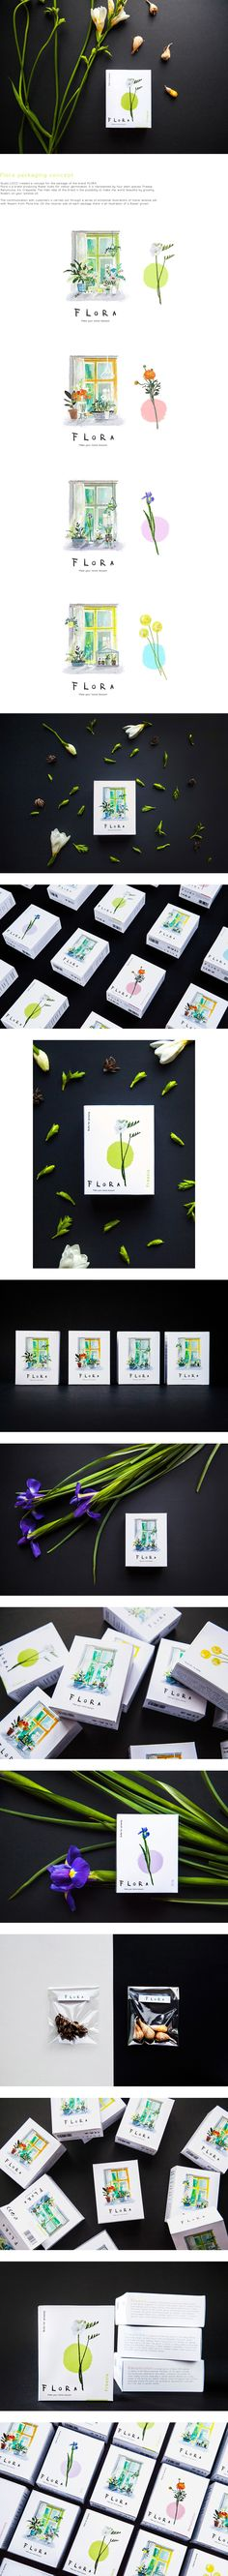 Flora packaging concept